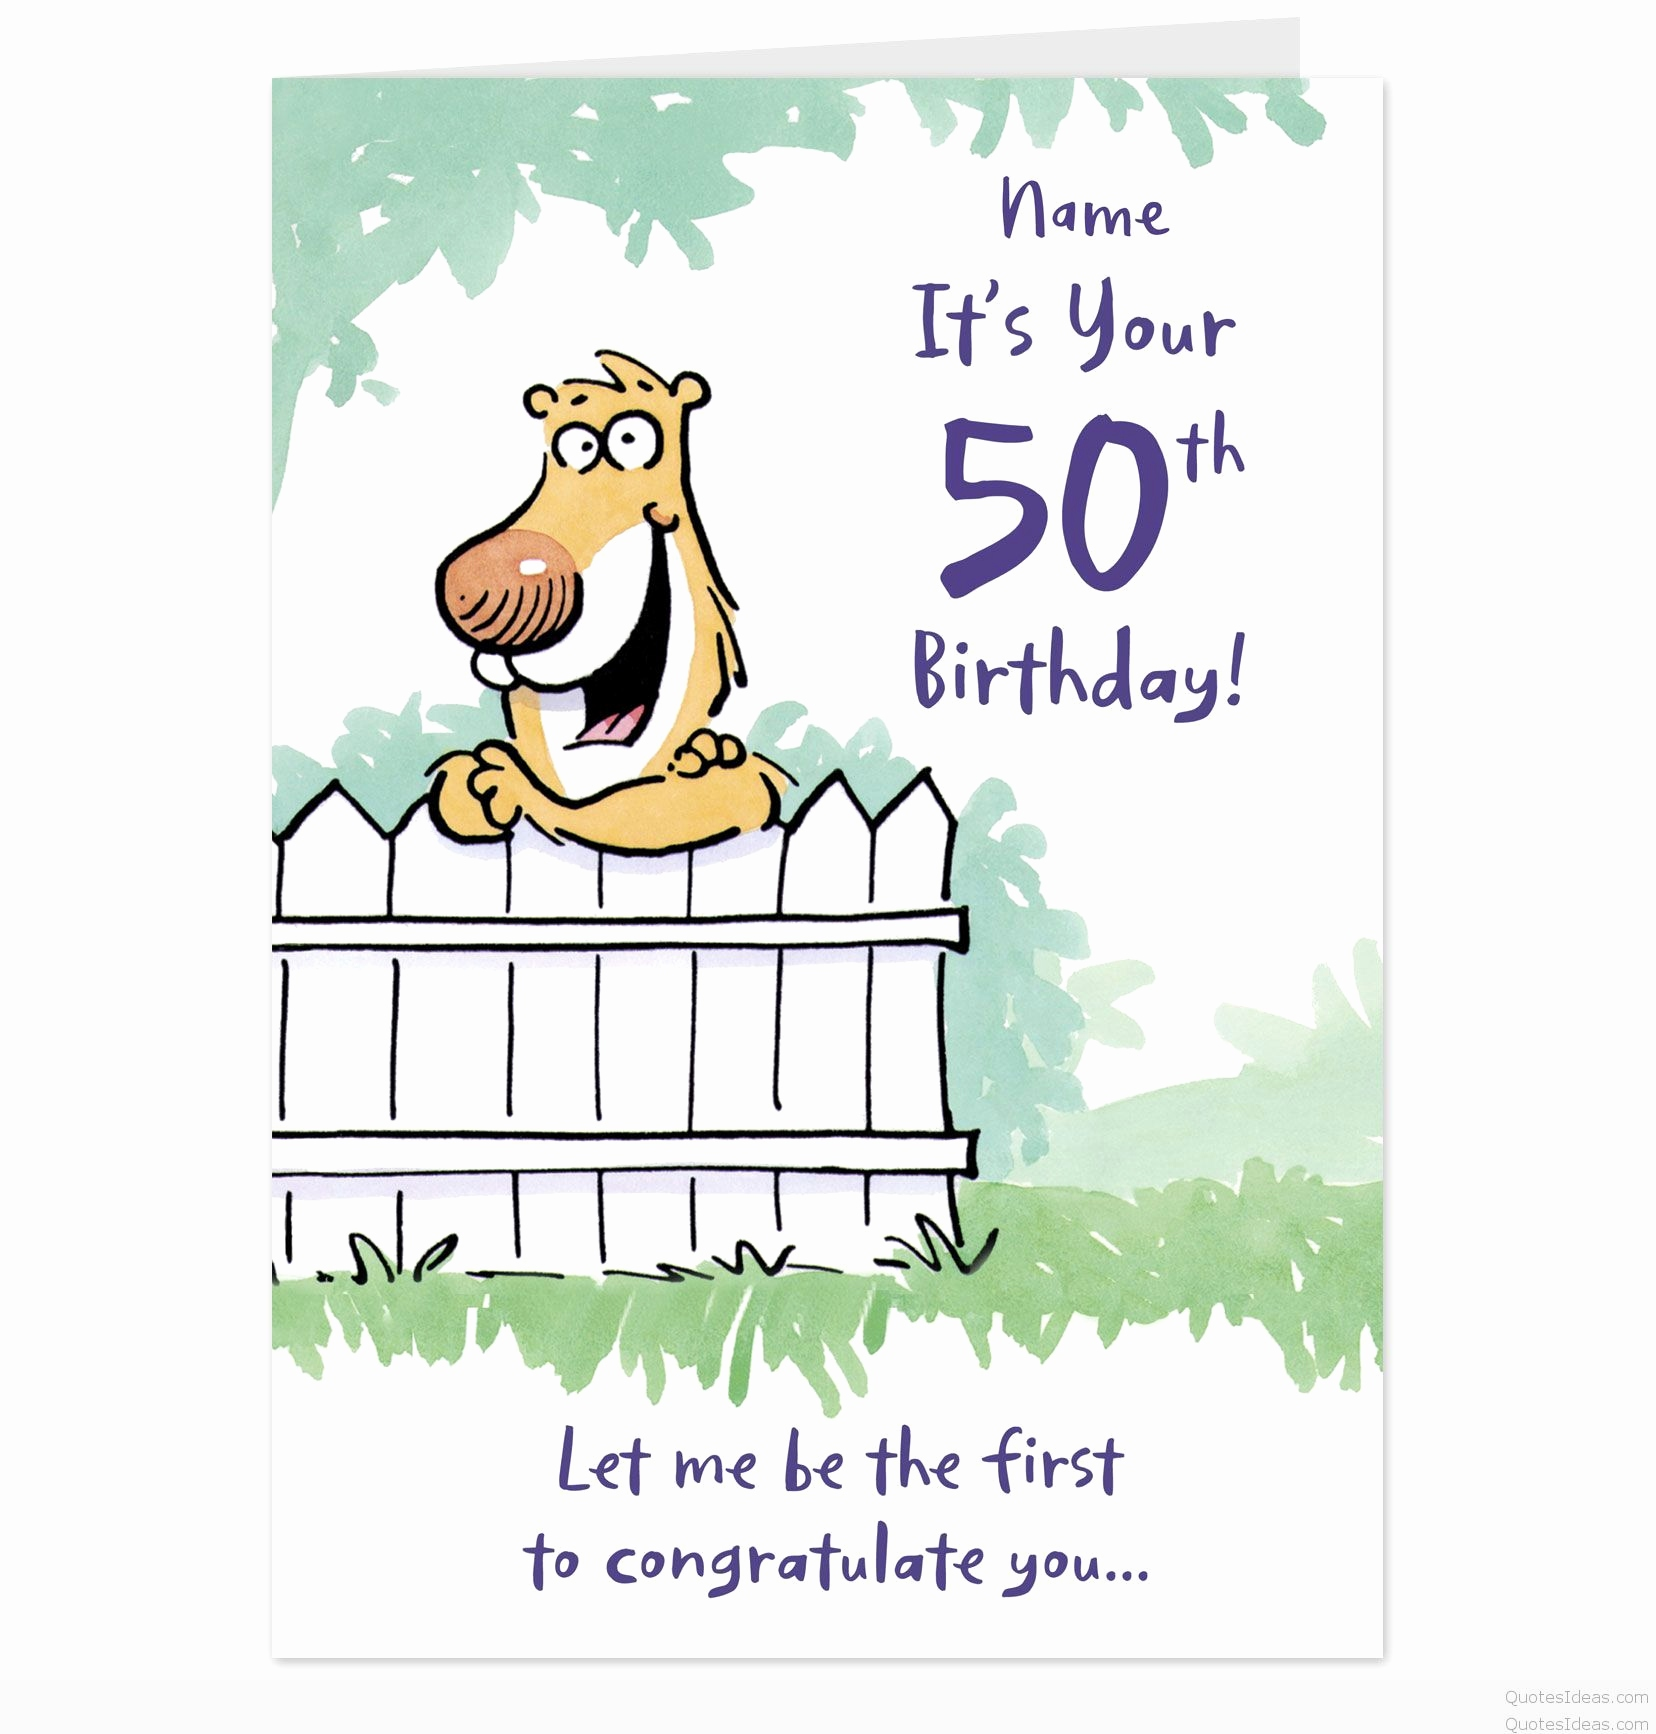 birthday greeting card messages funny ; funny-birthday-cards-for-friends-beautiful-birthday-card-messages-for-friends-funny-alanarasbach-of-funny-birthday-cards-for-friends